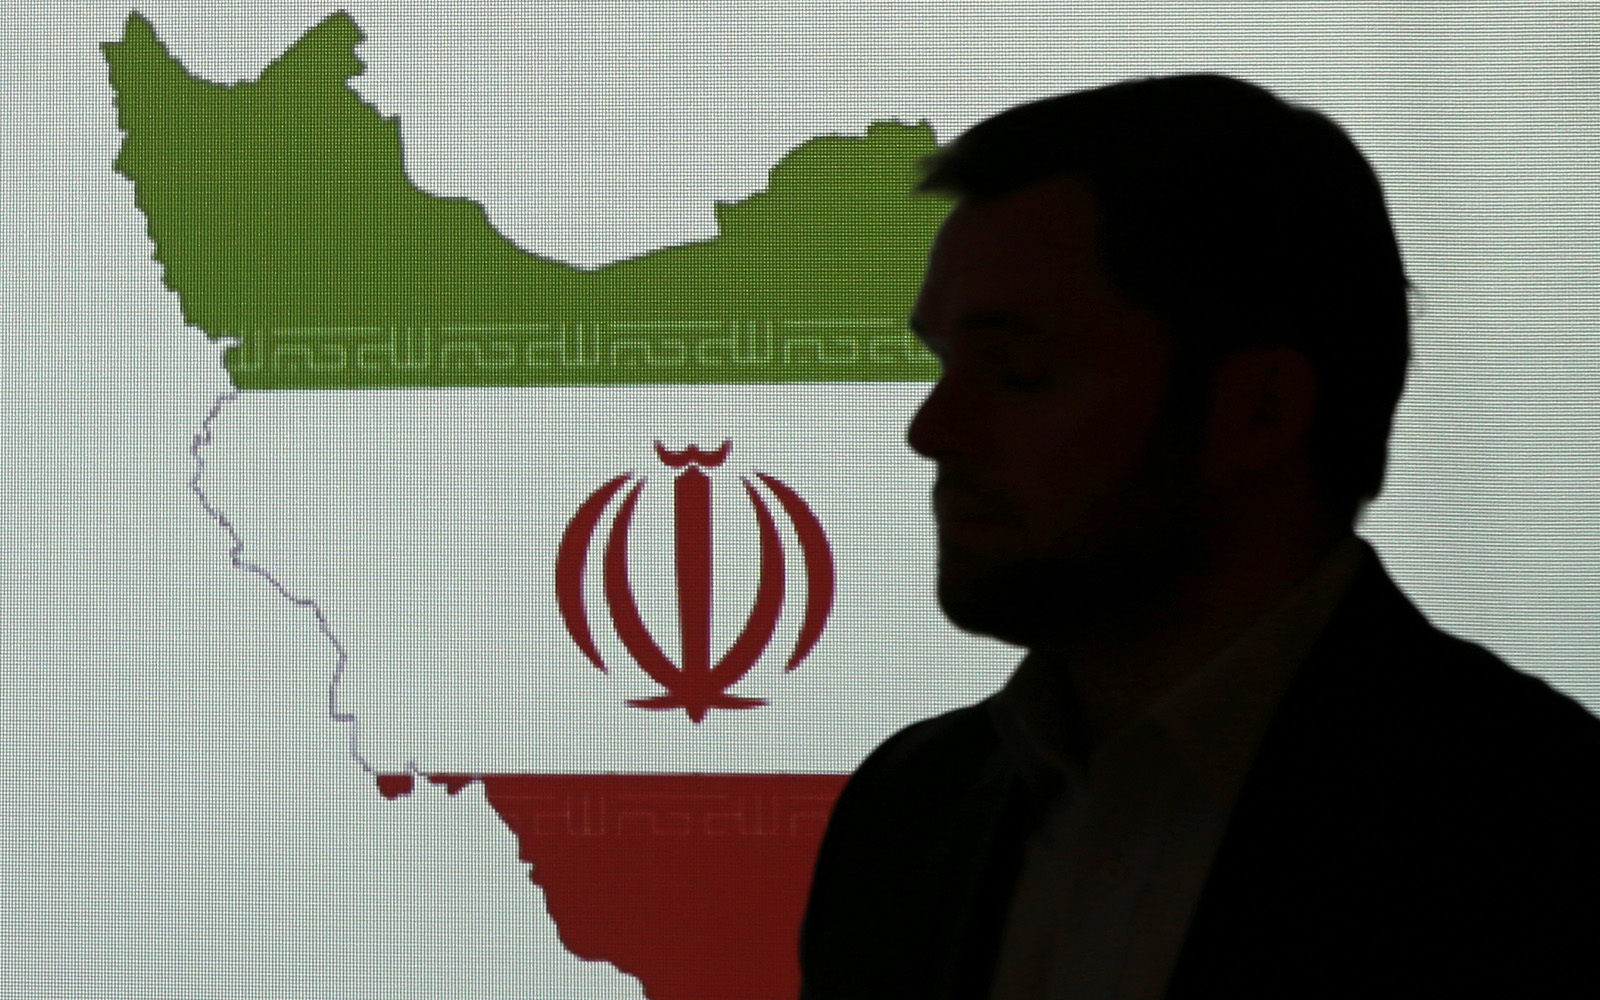 Iran-linked hackers say they breached Israeli cyber security firm Portnox